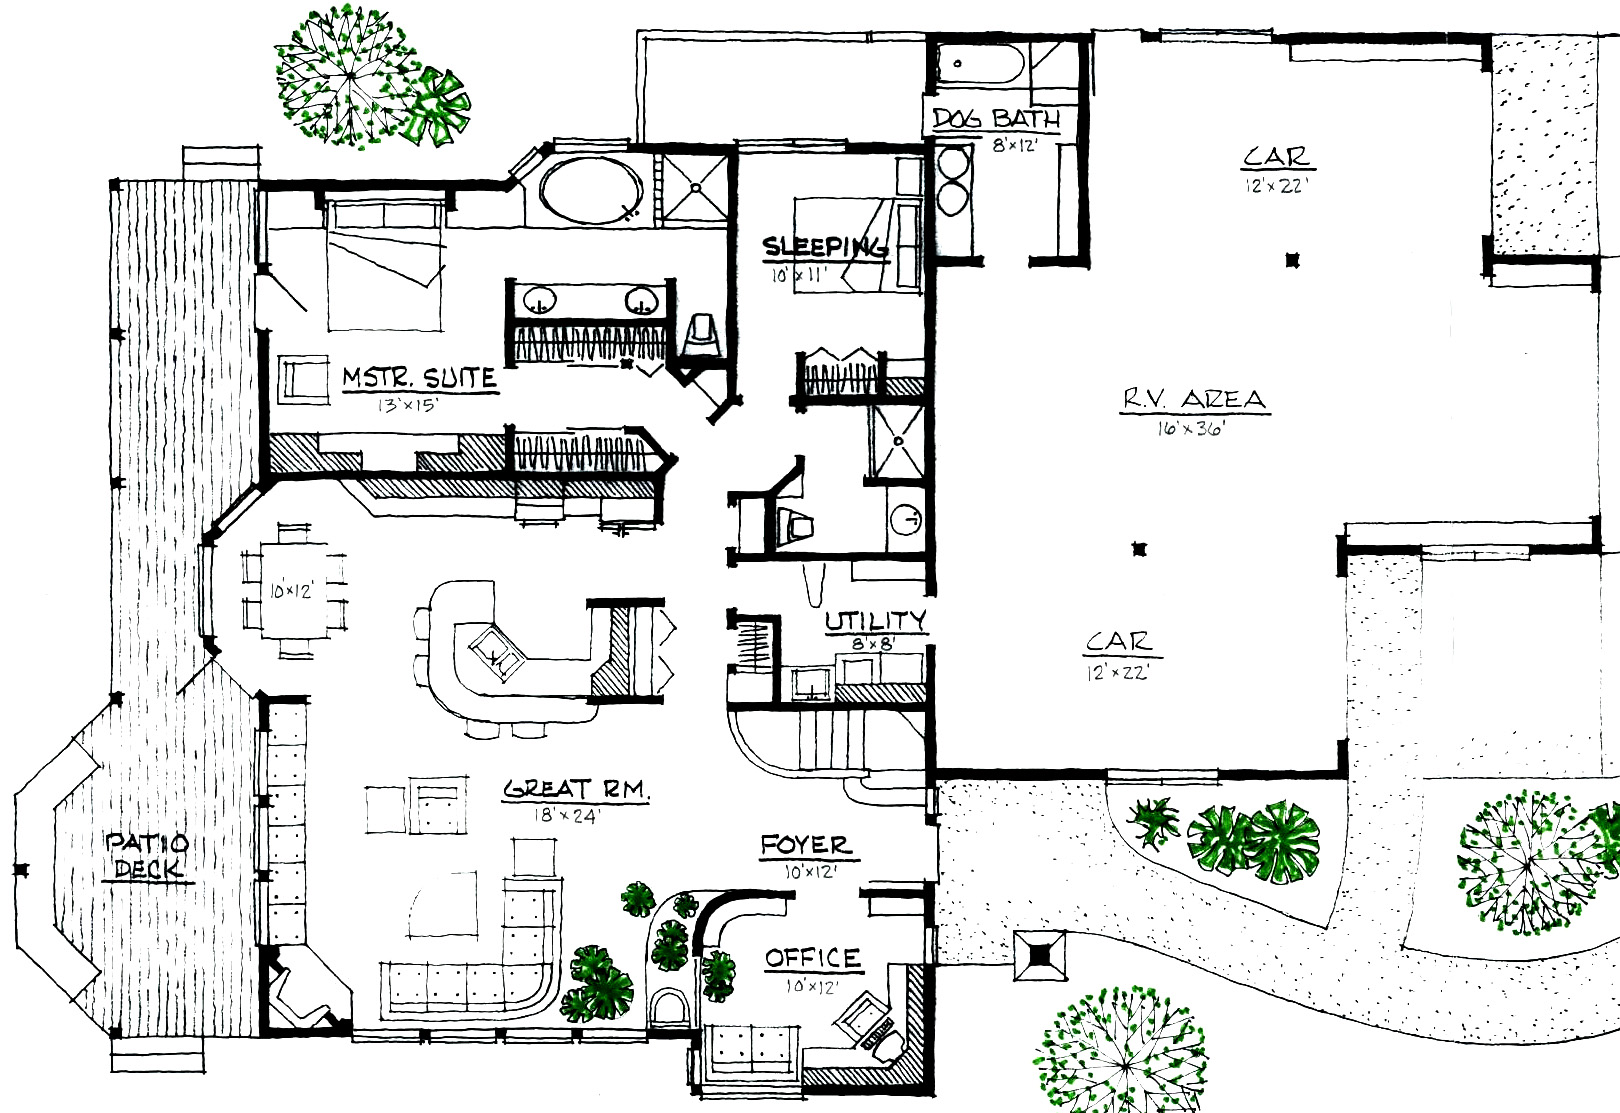 small energy efficient home plans energy efficient house floor plans small energy efficient home designs rustic lodge house plans 3279